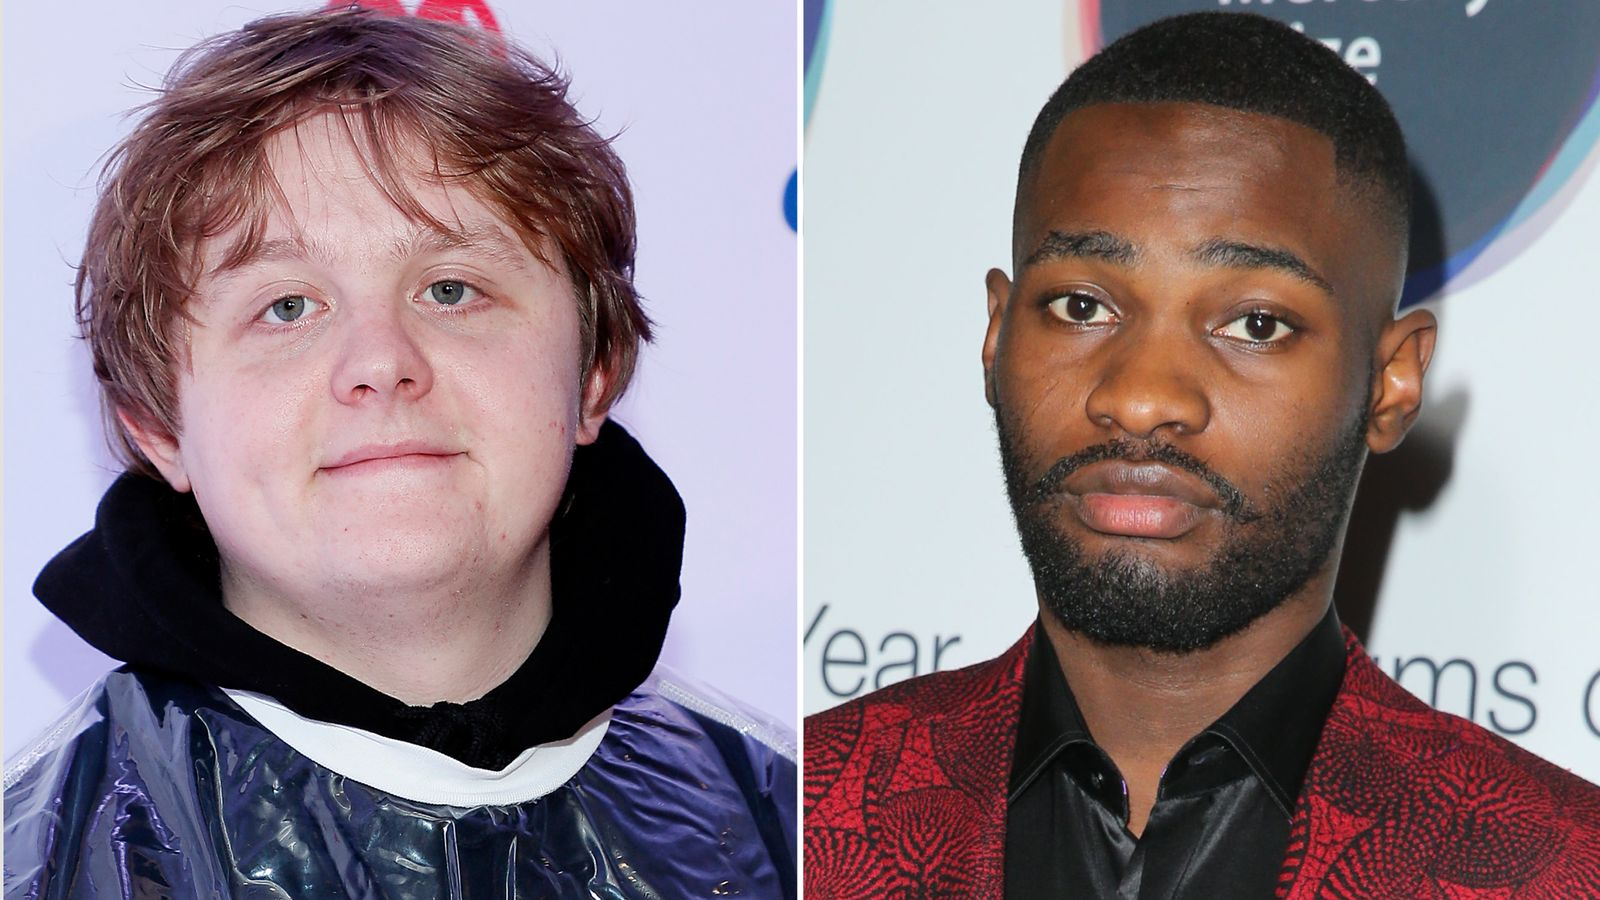 Brits nominations revealed: Lewis Capaldi and Dave lead shortlists